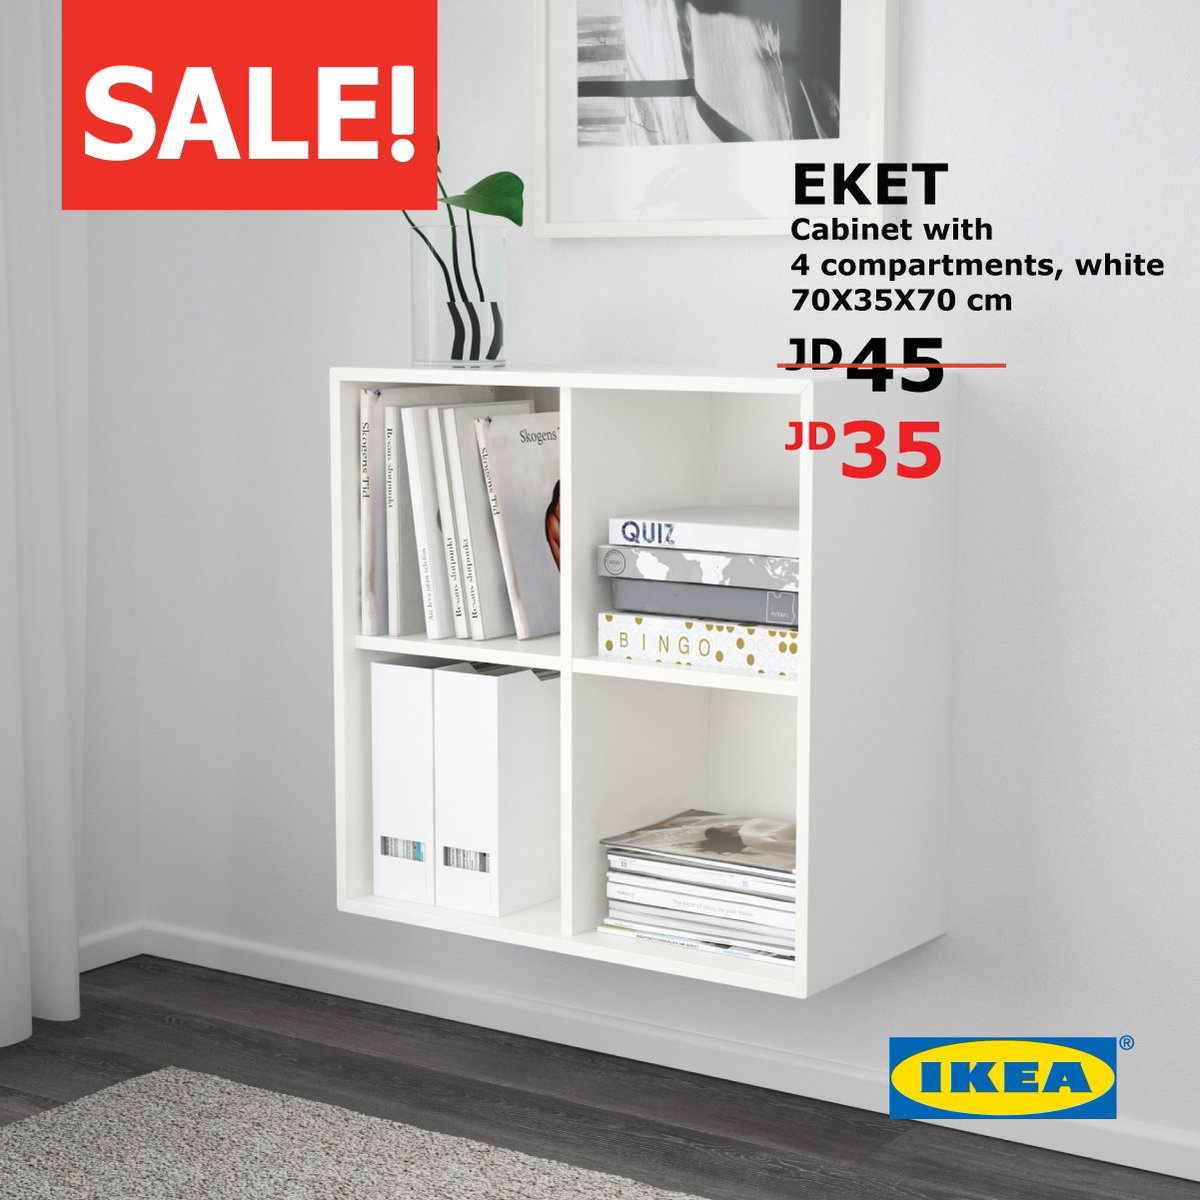 Ikea Jordan On Twitter Dont Sweat The Small Stuff Just Organize